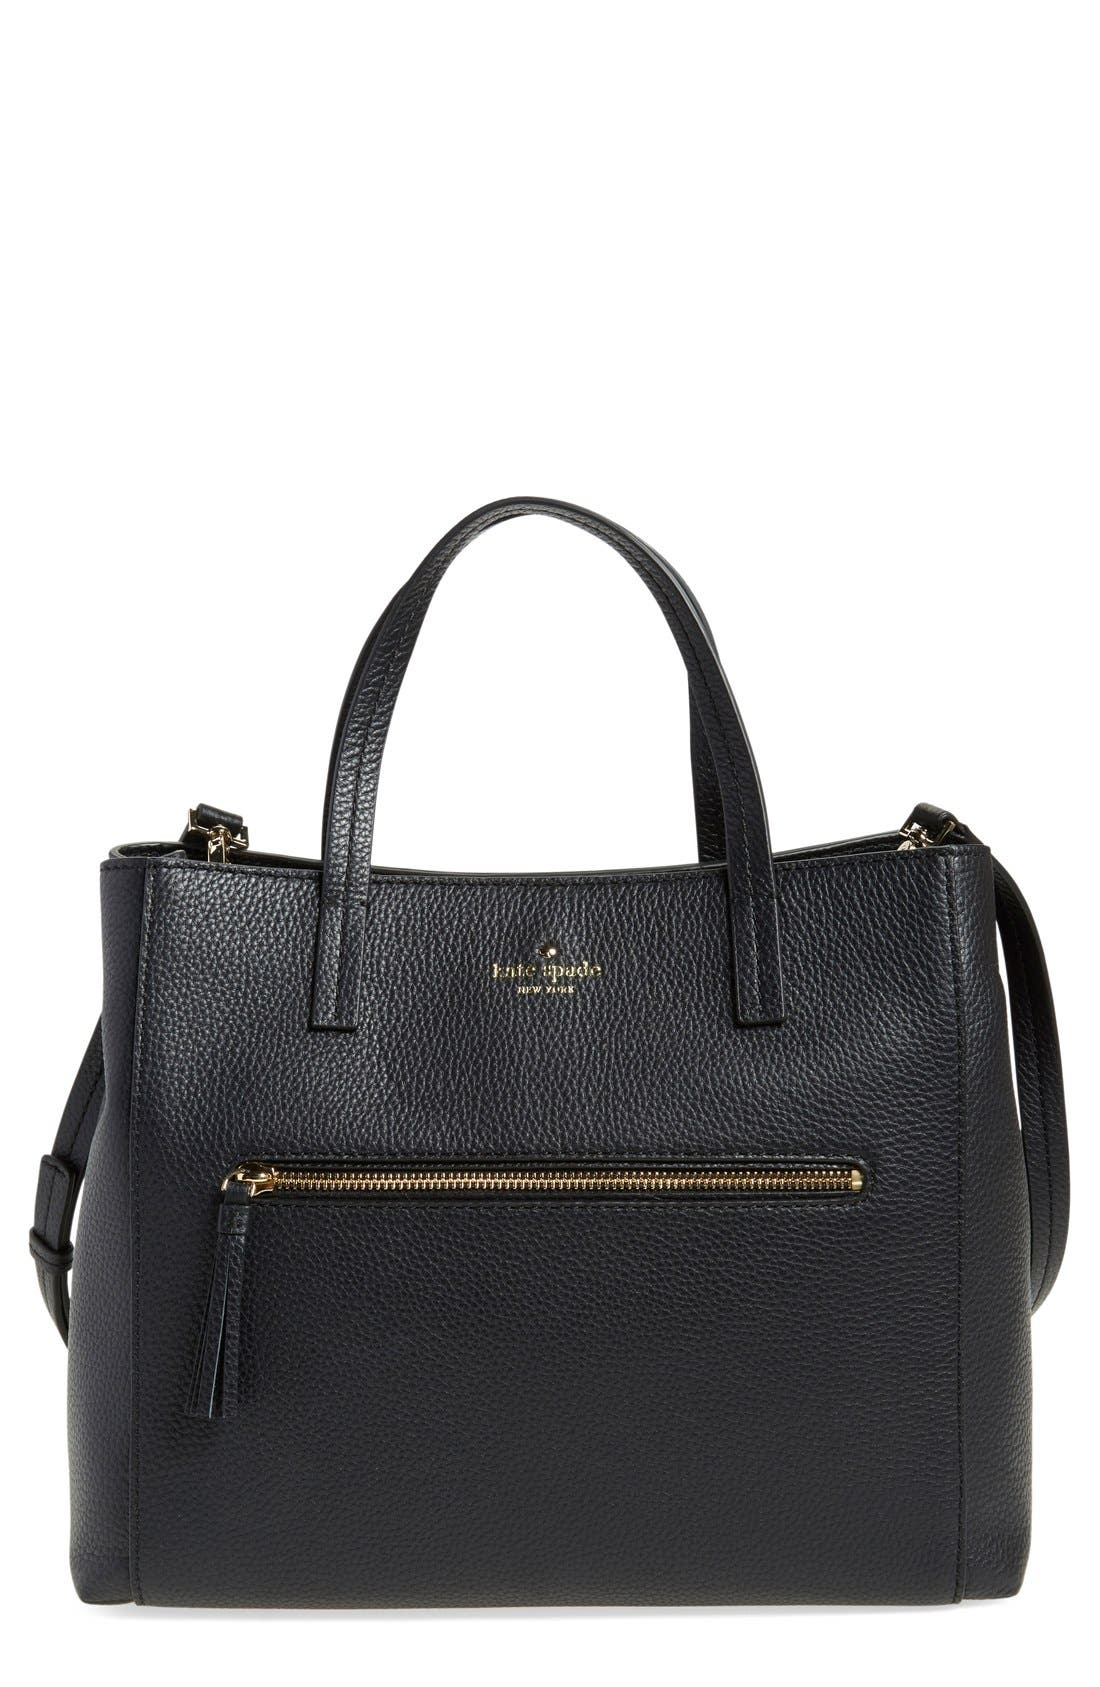 Alternate Image 1 Selected - kate spade new york 'spencer court - tera' leather satchel (Nordstrom Exclusive)